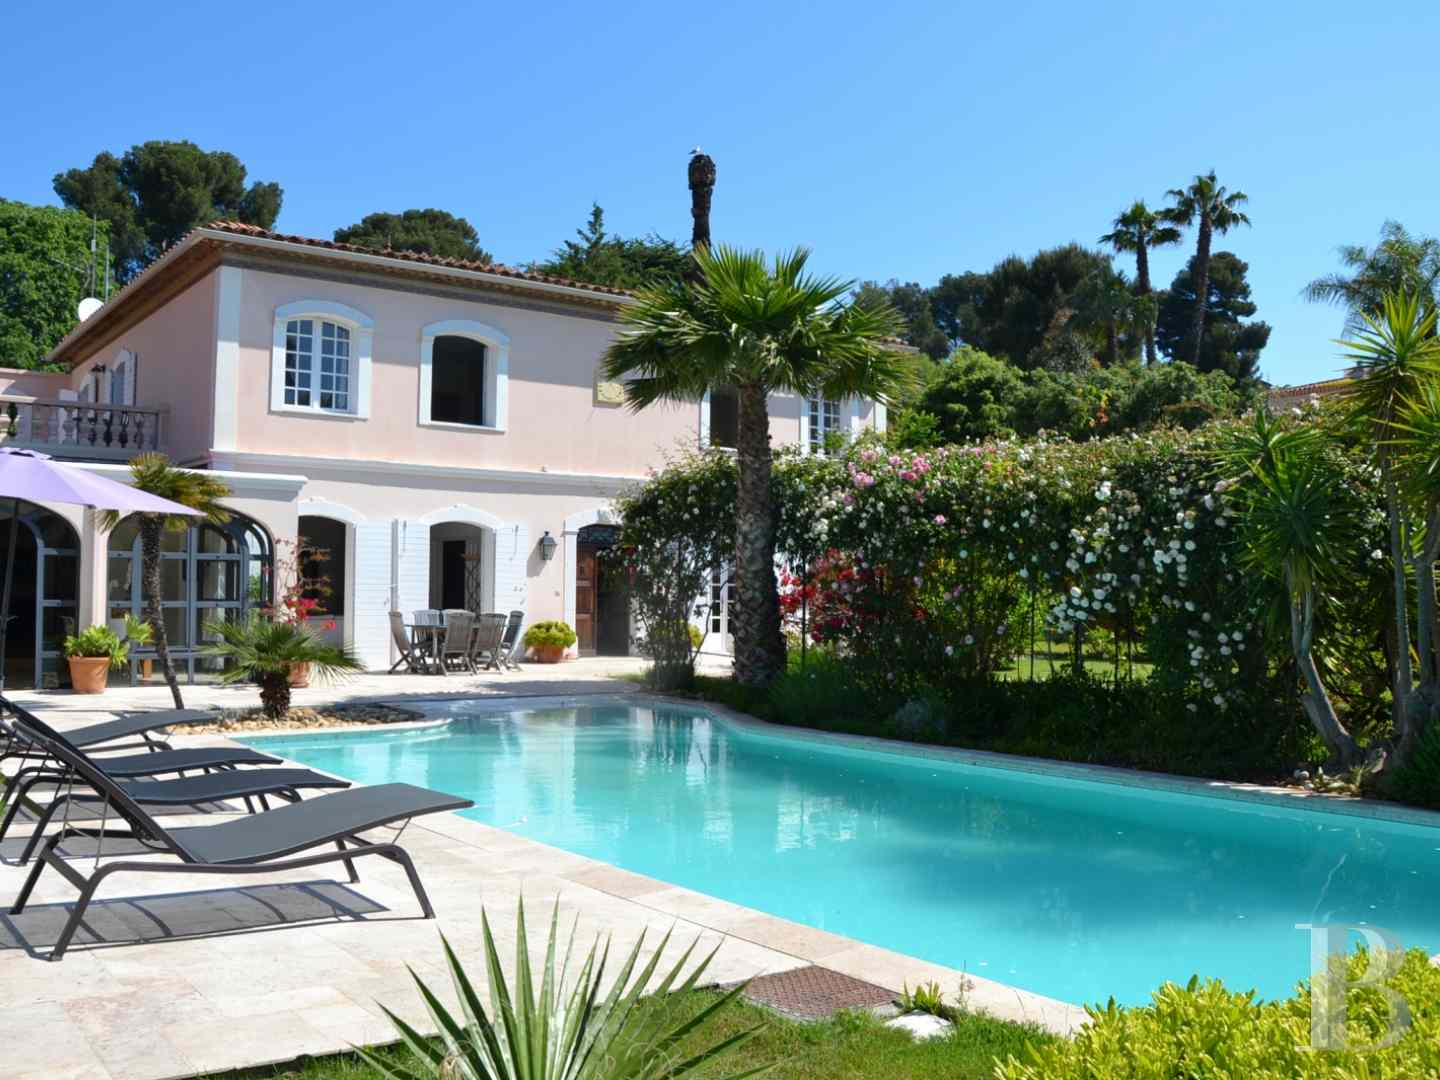 property for sale France provence cote dazur residences 20th - 8 zoom